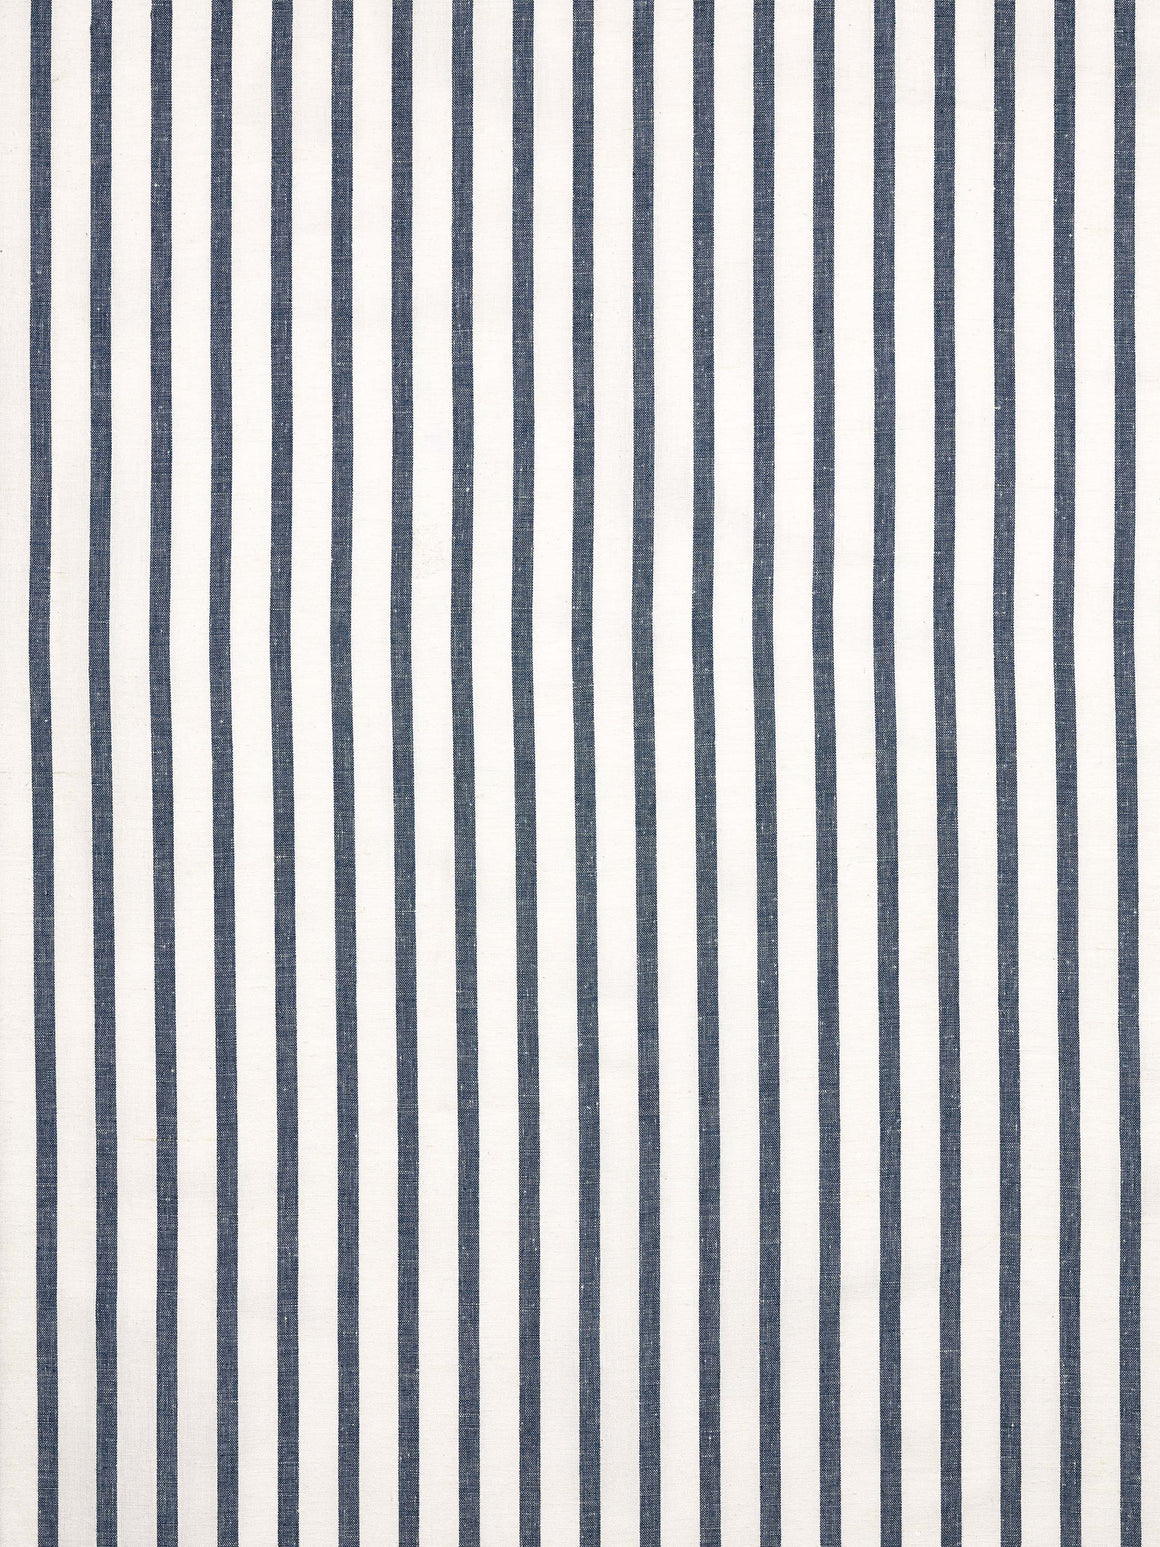 Autumn Ticking Stripe Cotton Linen Fabric by the Meter in Dark Petrol Blue